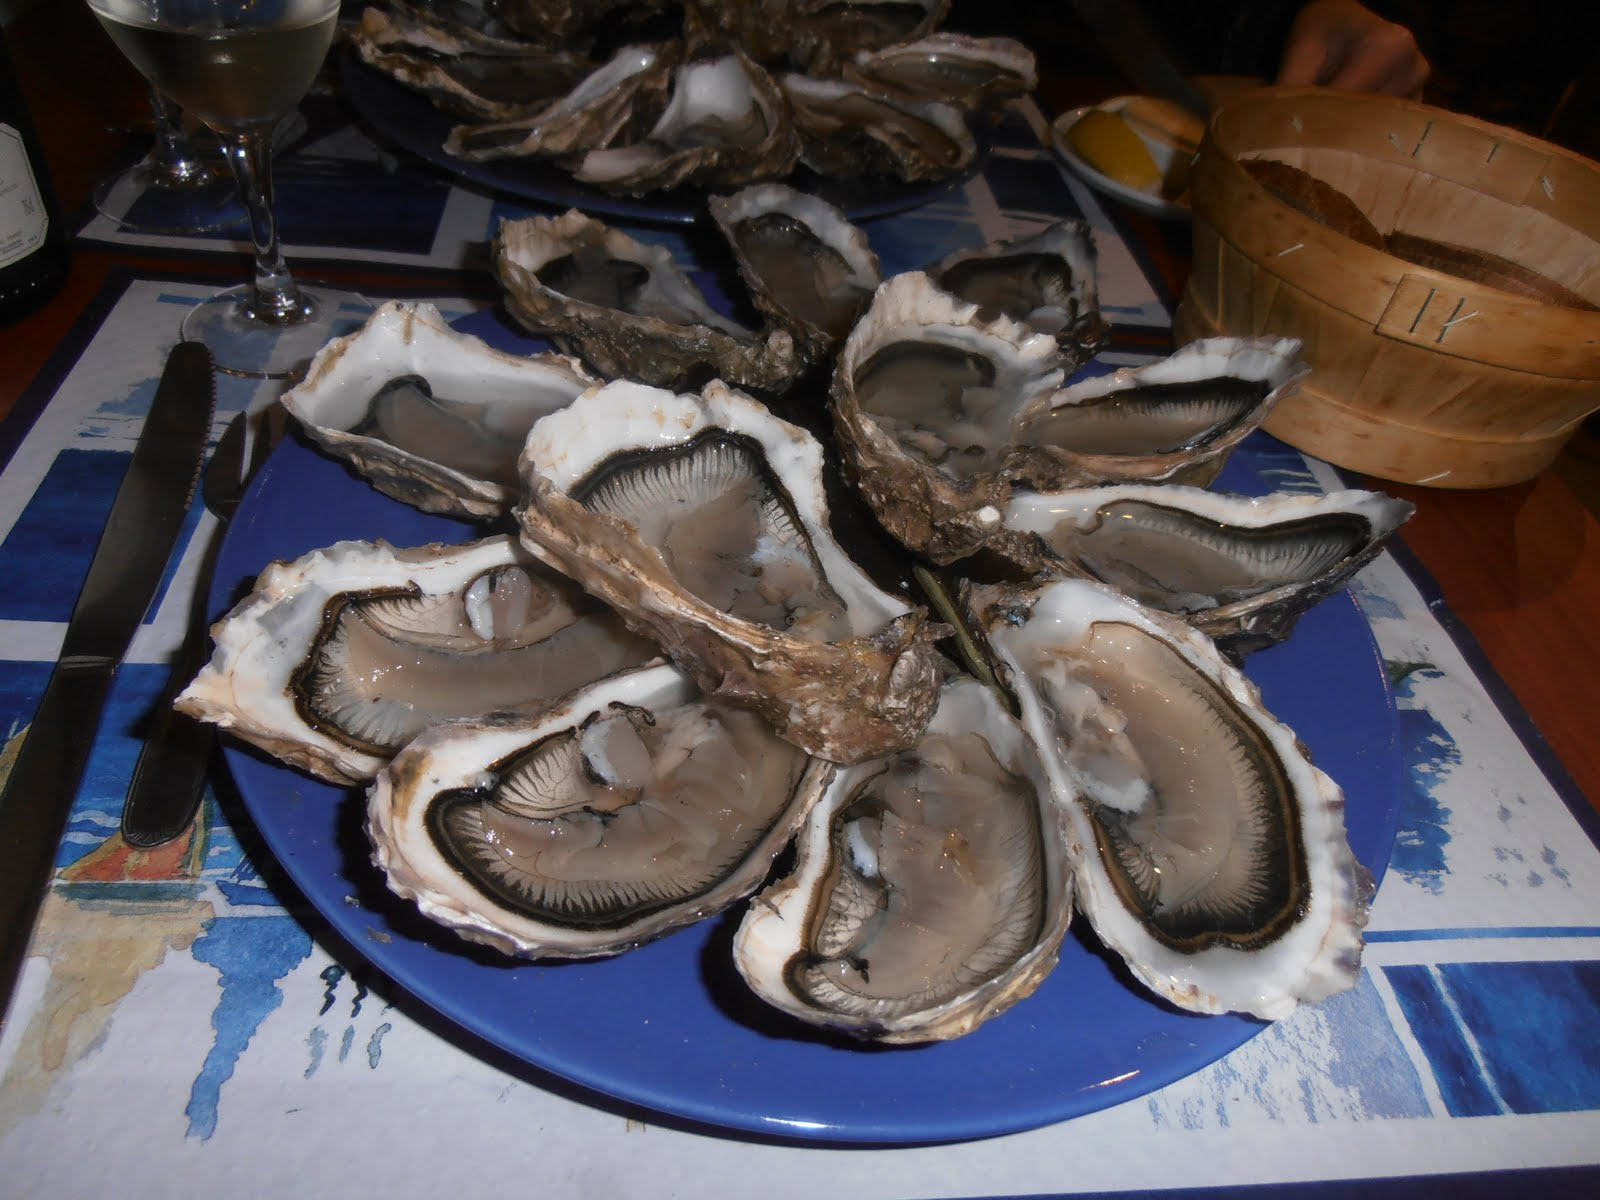 Paris Restaurants and Beyond: Pleine Mer - Oyster Heaven